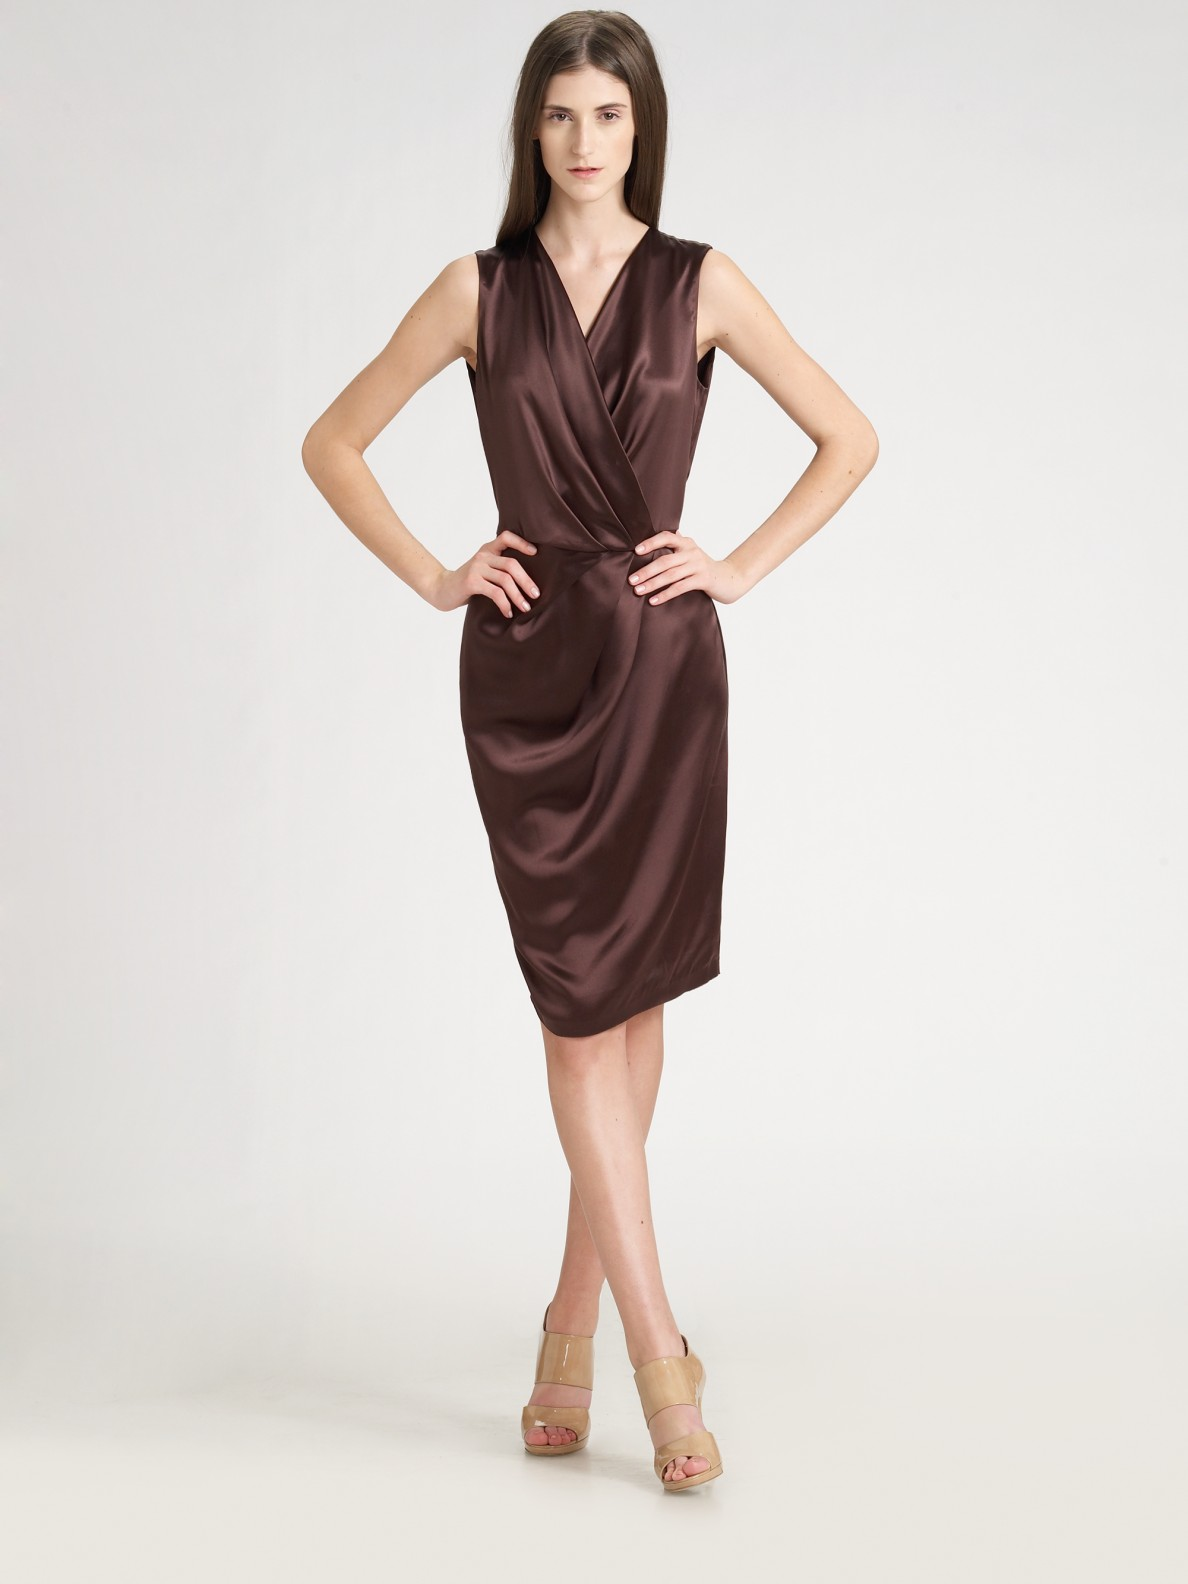 Lyst Ports 1961 Pleated Satin Dress In Brown